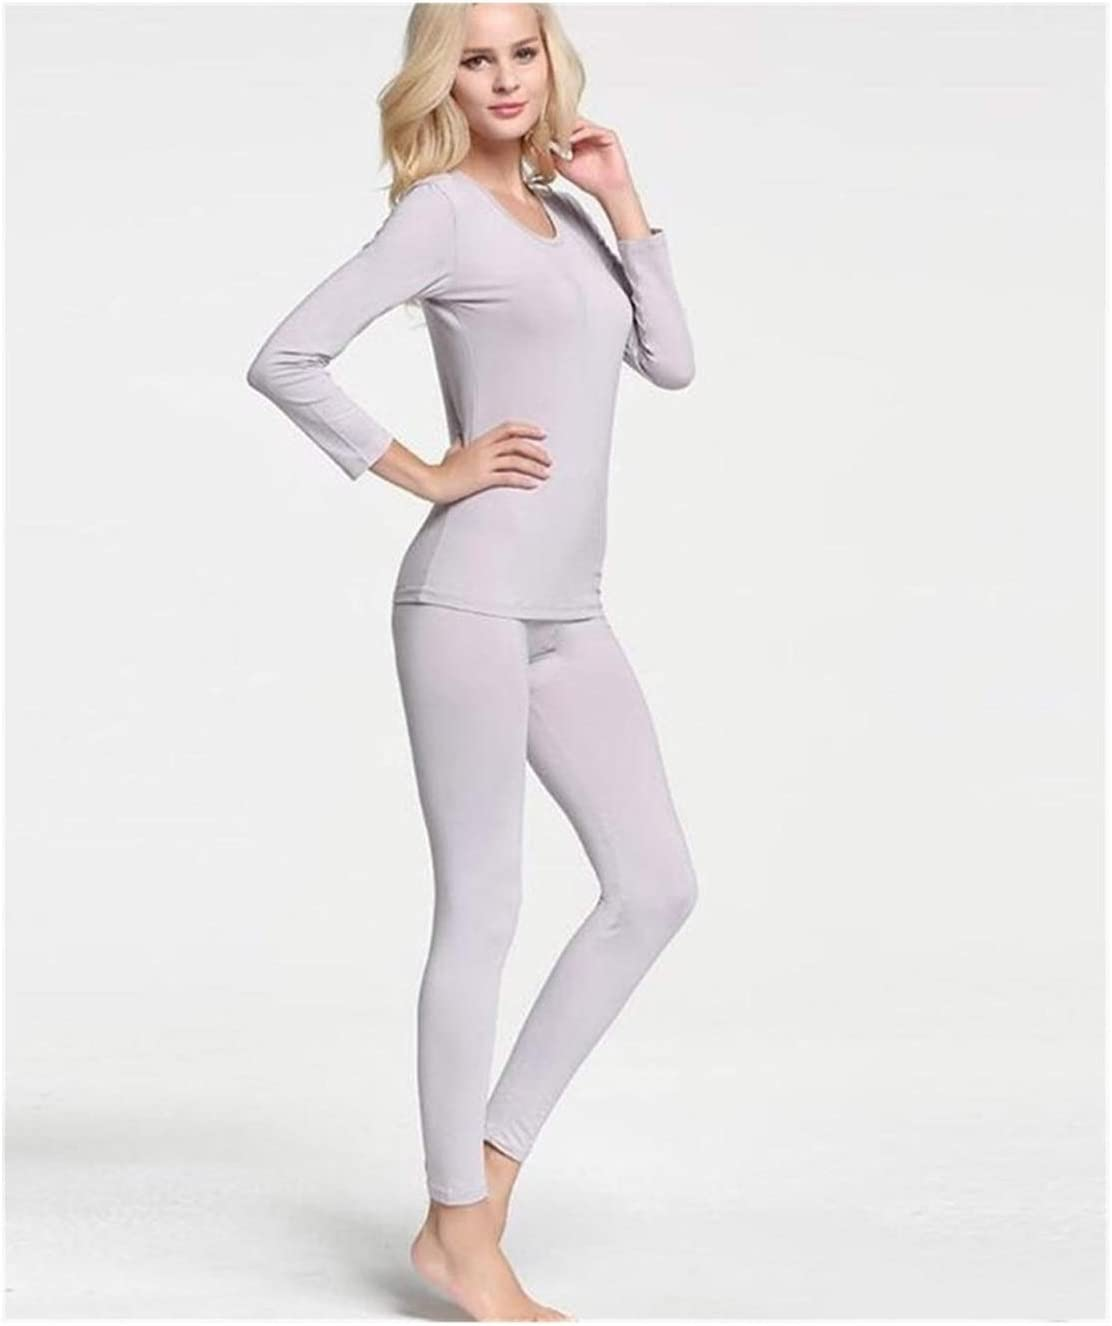 QWERBAM Woman Winter Warm Thermal Underwear Set for Women Solid Simple Elastic Female Sleep Wear Thermal Clothing Winter (Color : Pink, Size : L.)